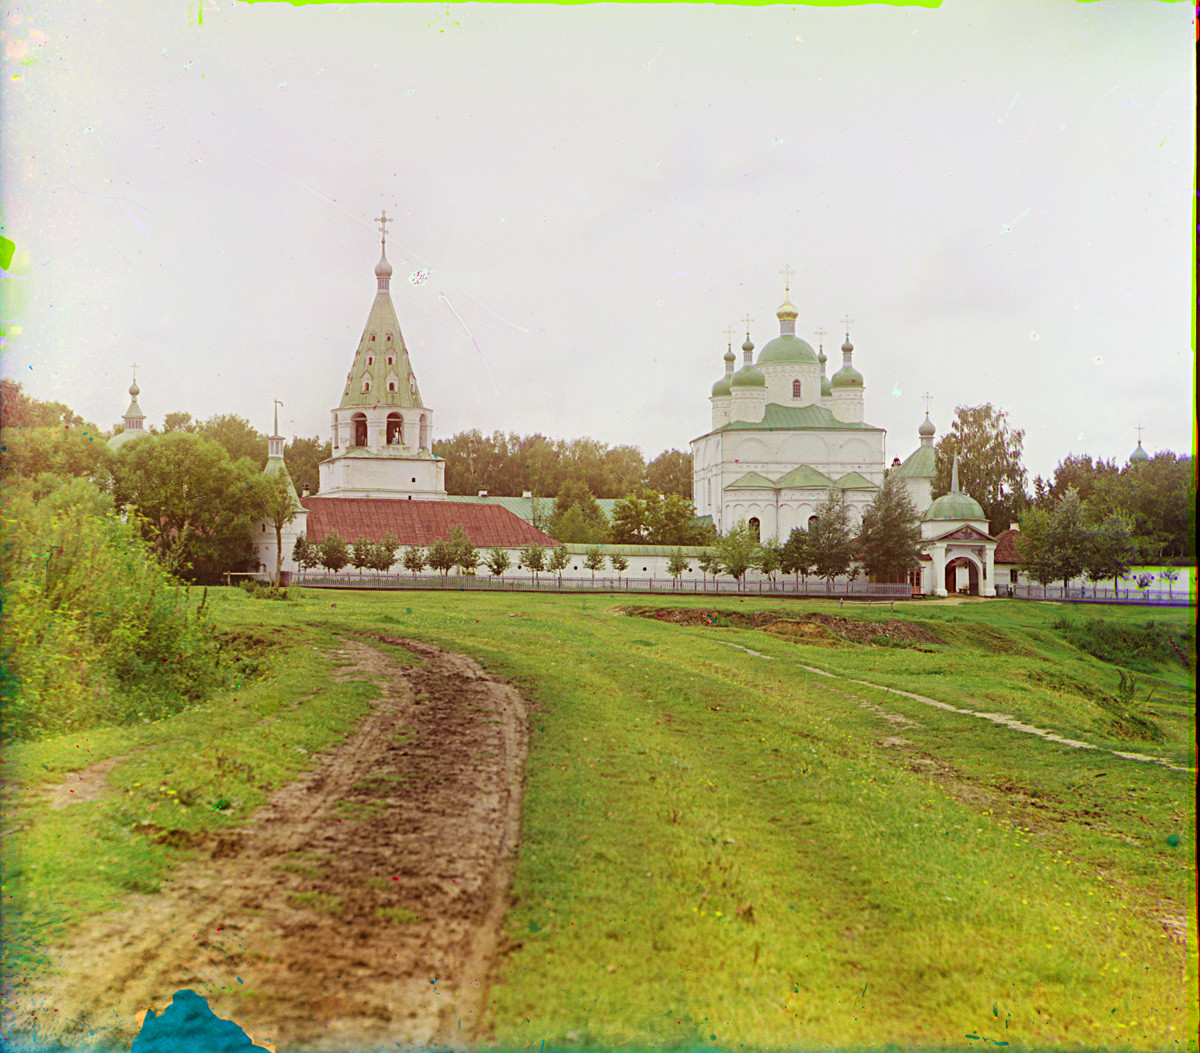 Luzhetsky-St. Ferapont-Nativity of the Virgin Monastery, east view. From left: Bell tower, Nativity Cathedral, Church of St. Ferapont (demolished), East Gate. Summer 1911.